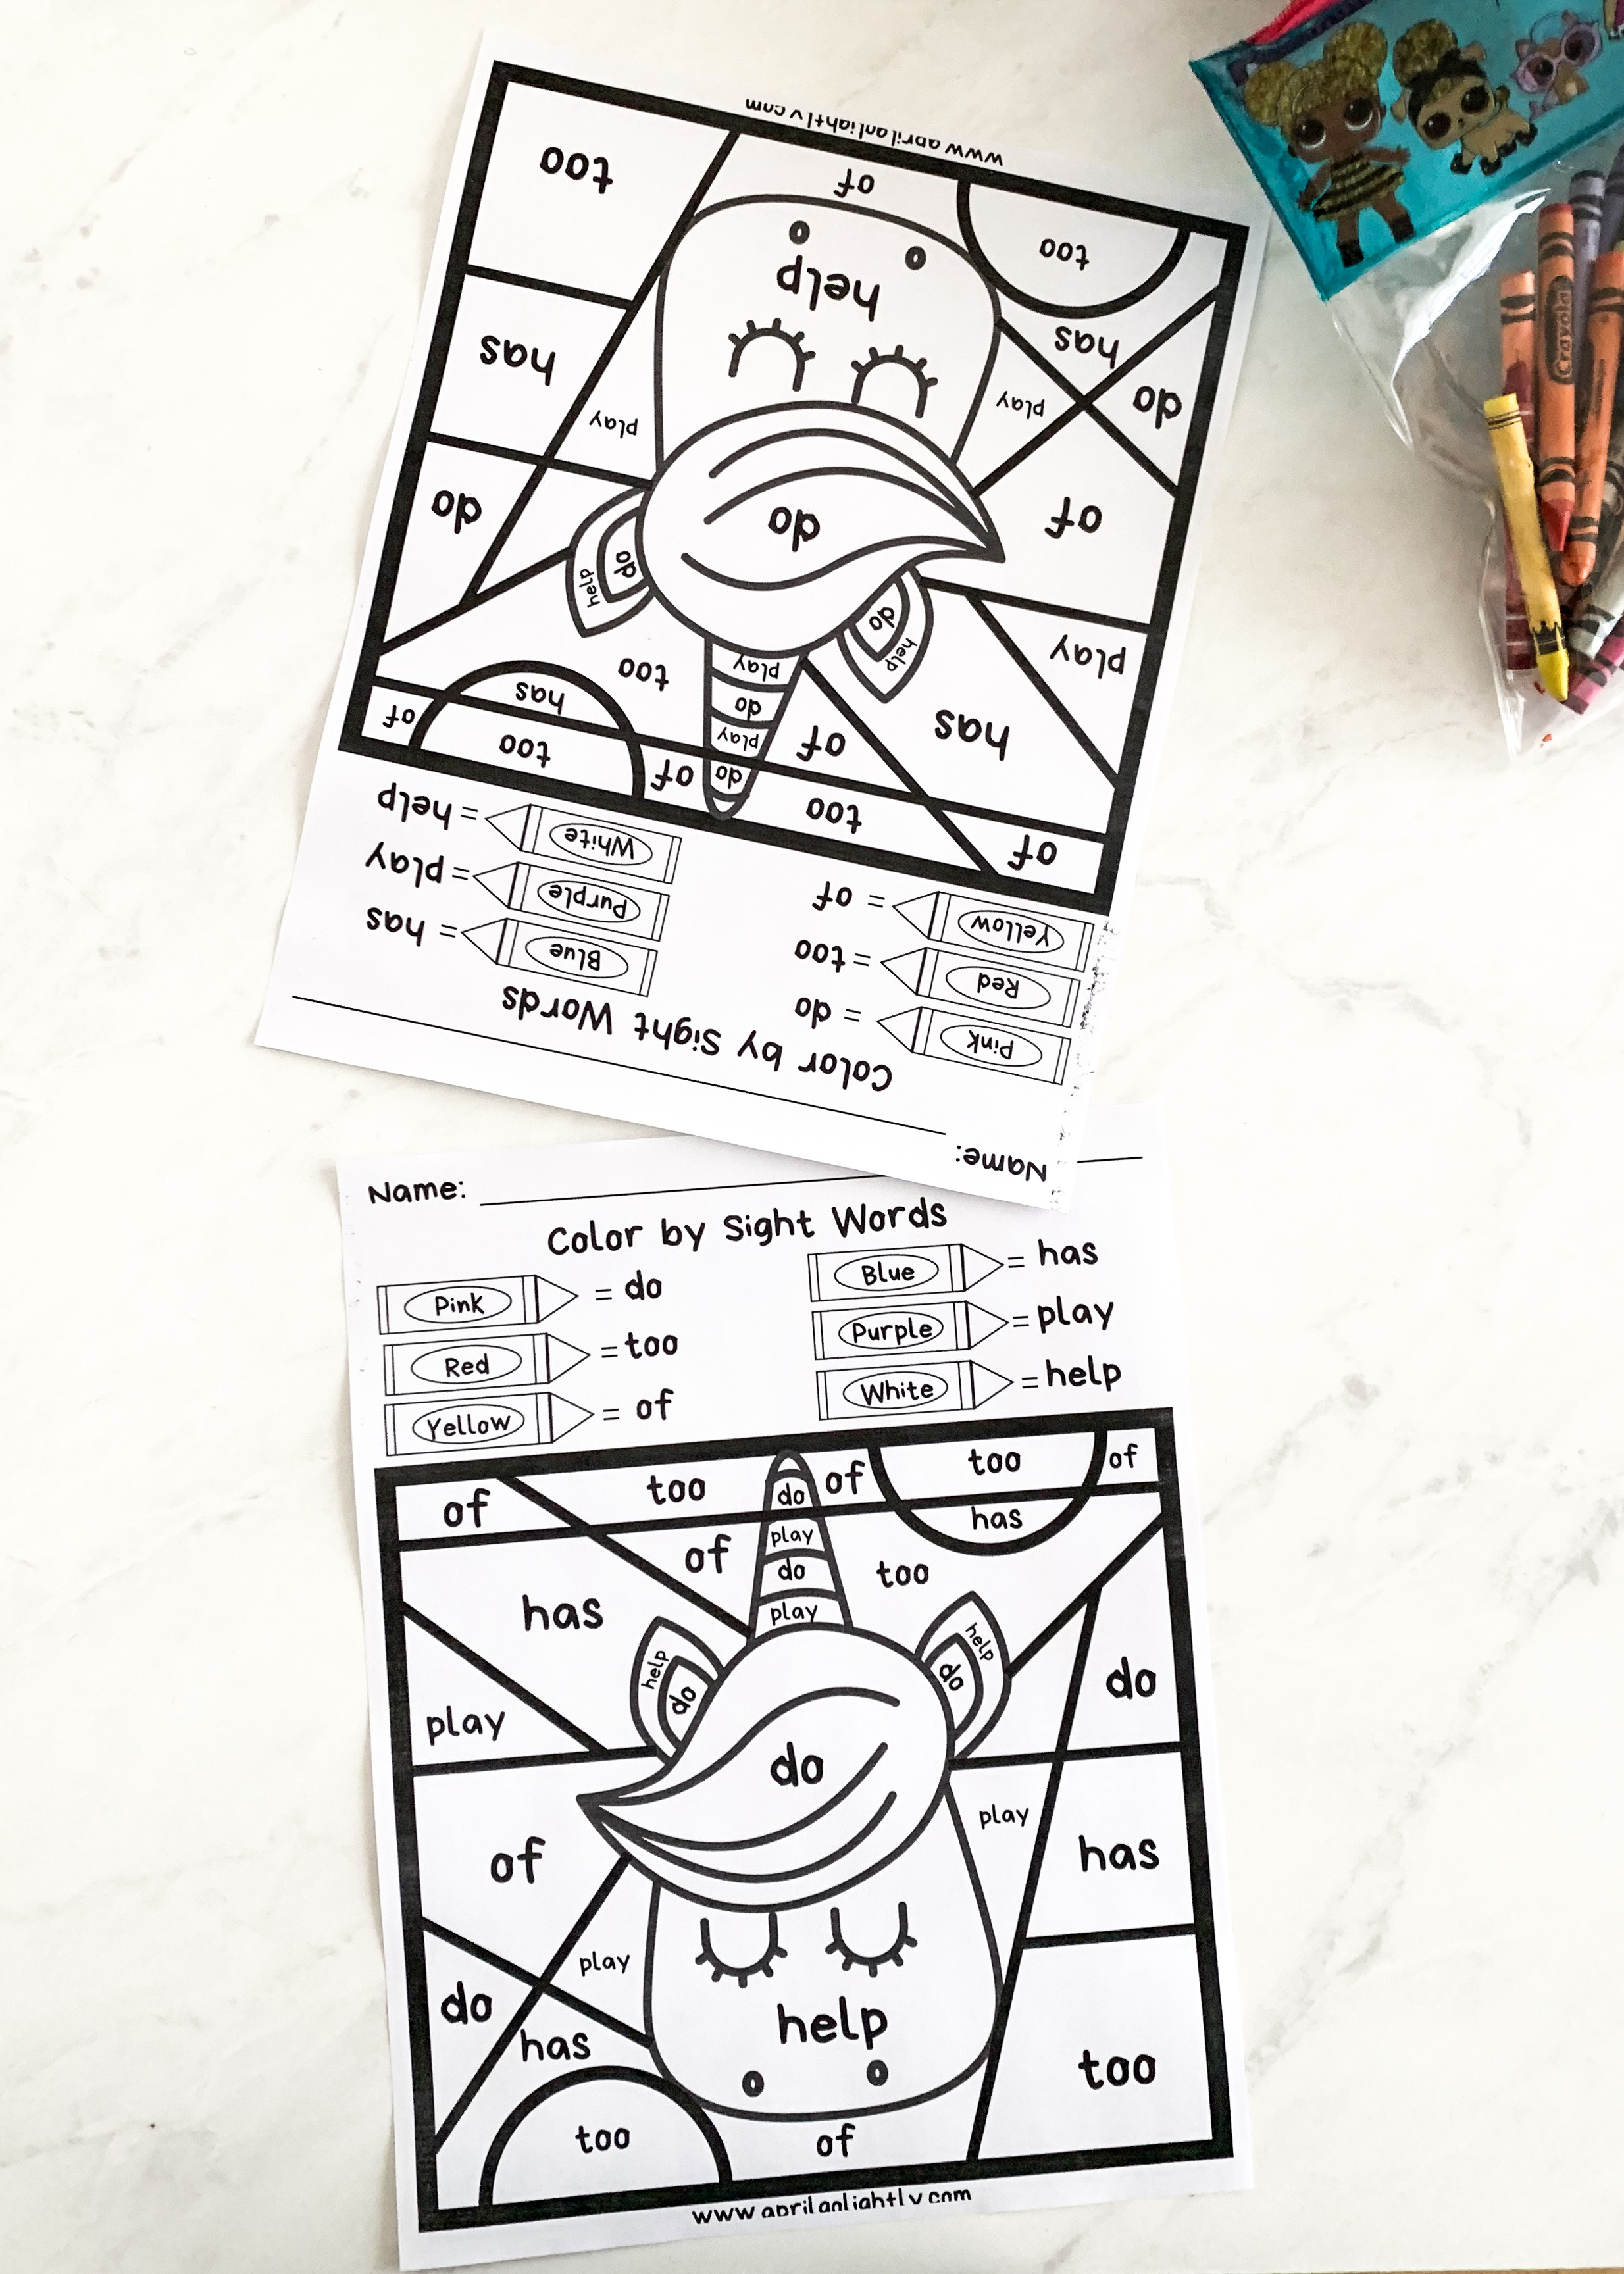 Free Unicorn Printable Coloring Pages